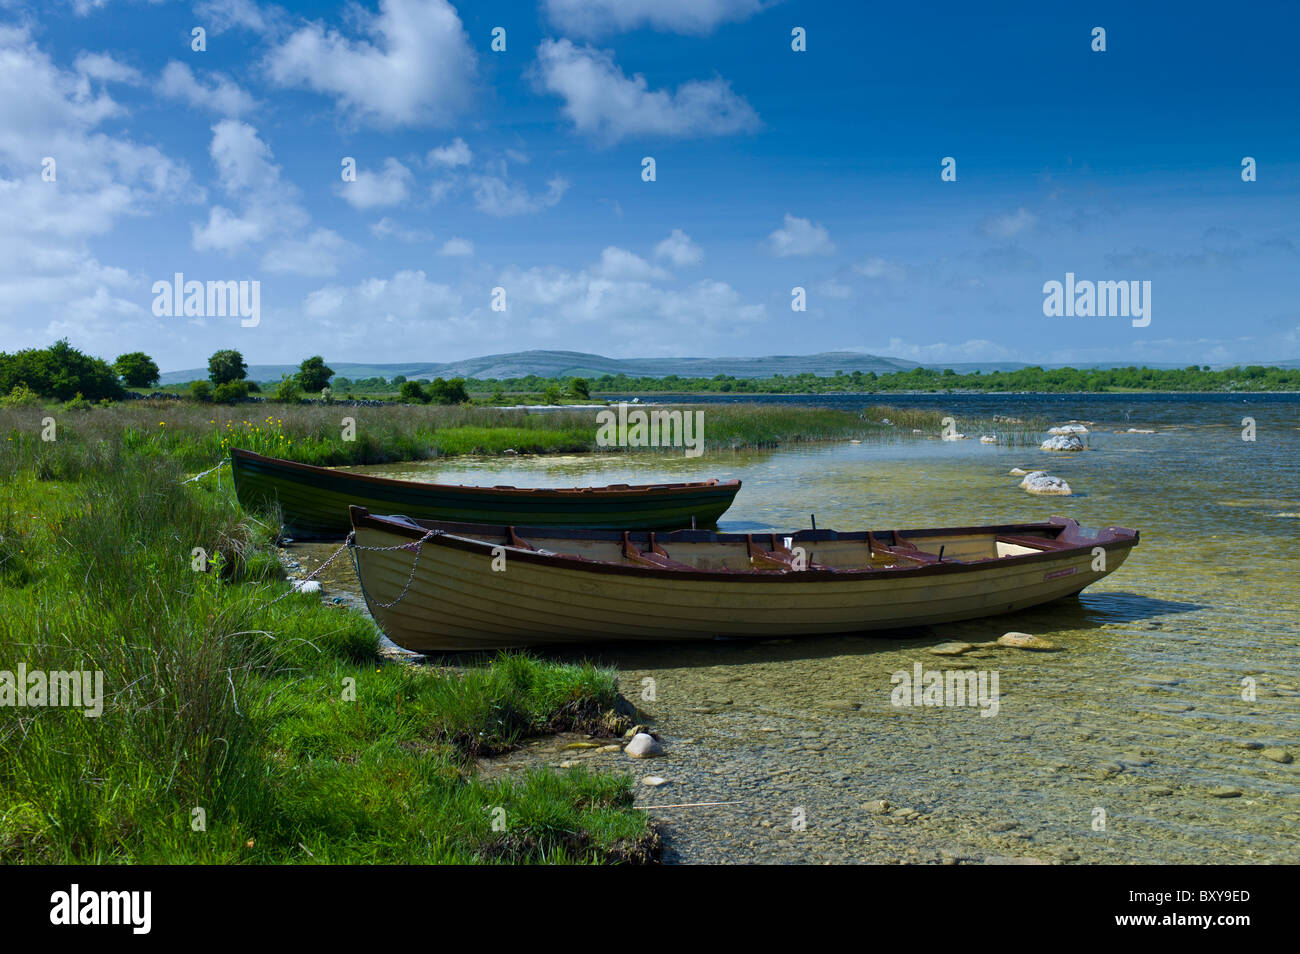 Boats among the reeds at Lough Muckanagh, County Clare, West of Ireland - Stock Image